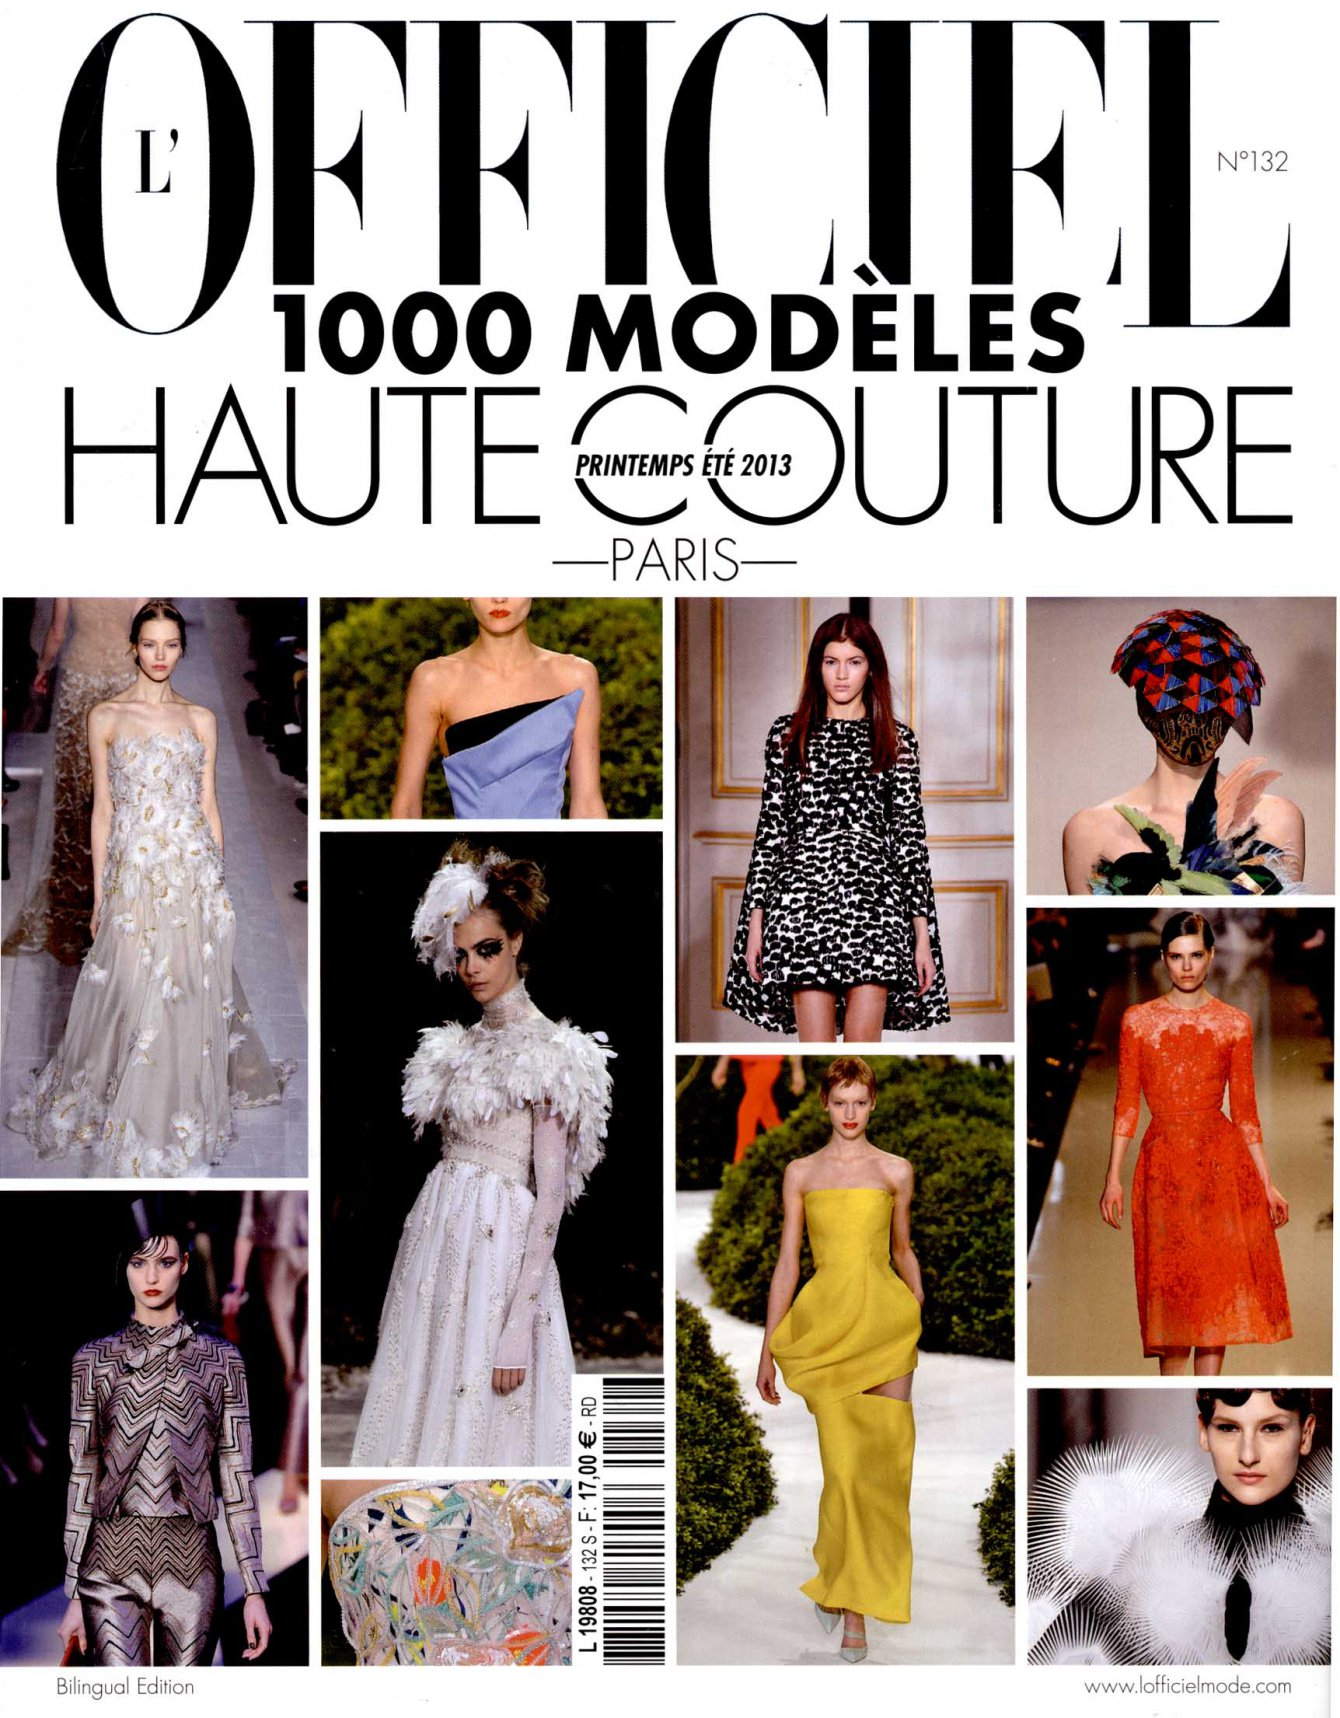 L'OFFICIEL 1000 MODELES Haute Couture Paris ss13 IRIS VAN HERPEN COVER